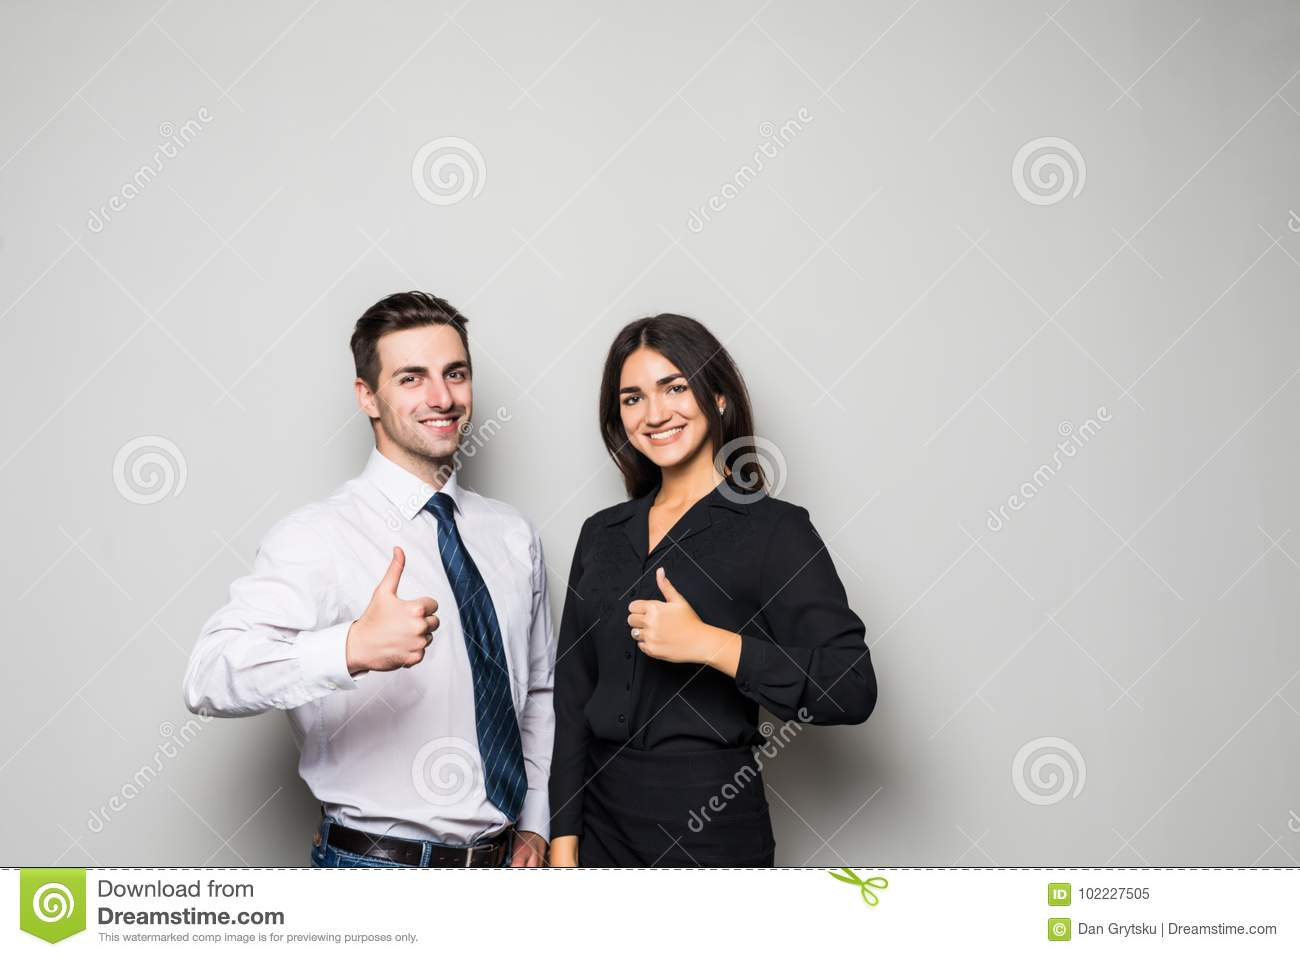 Two smiling happy businesspeople in formalwear showing thumbs-up on gray